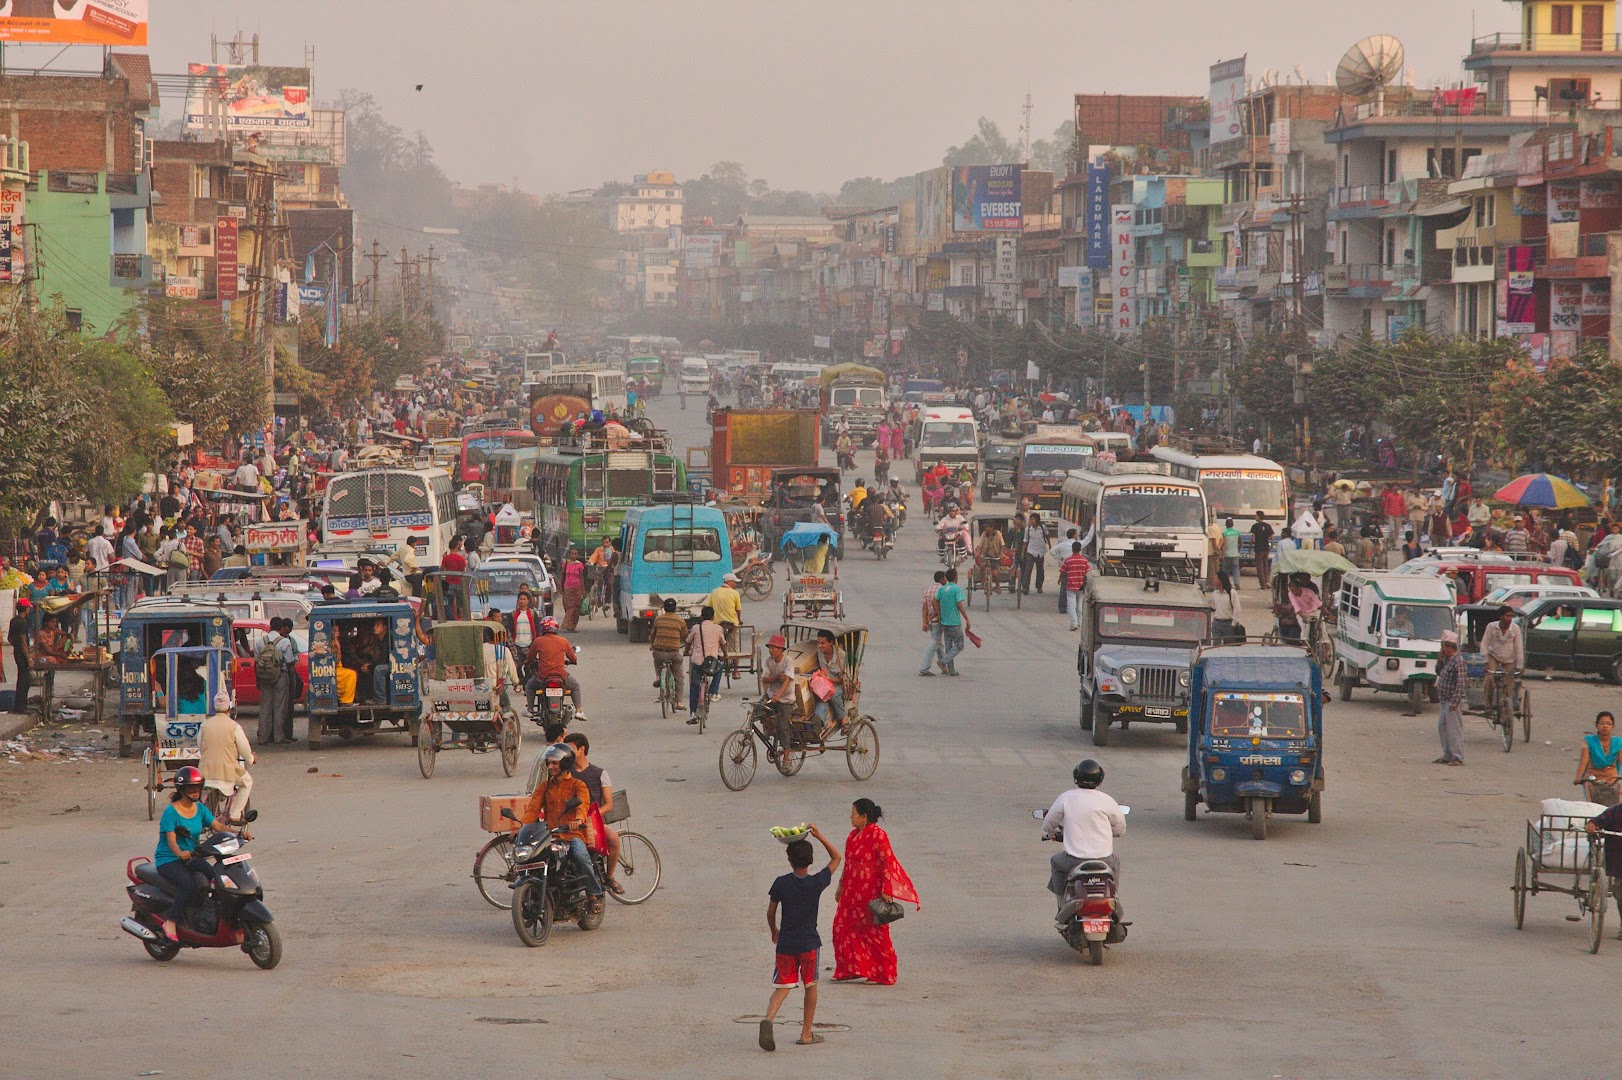 Busy Nepalese street